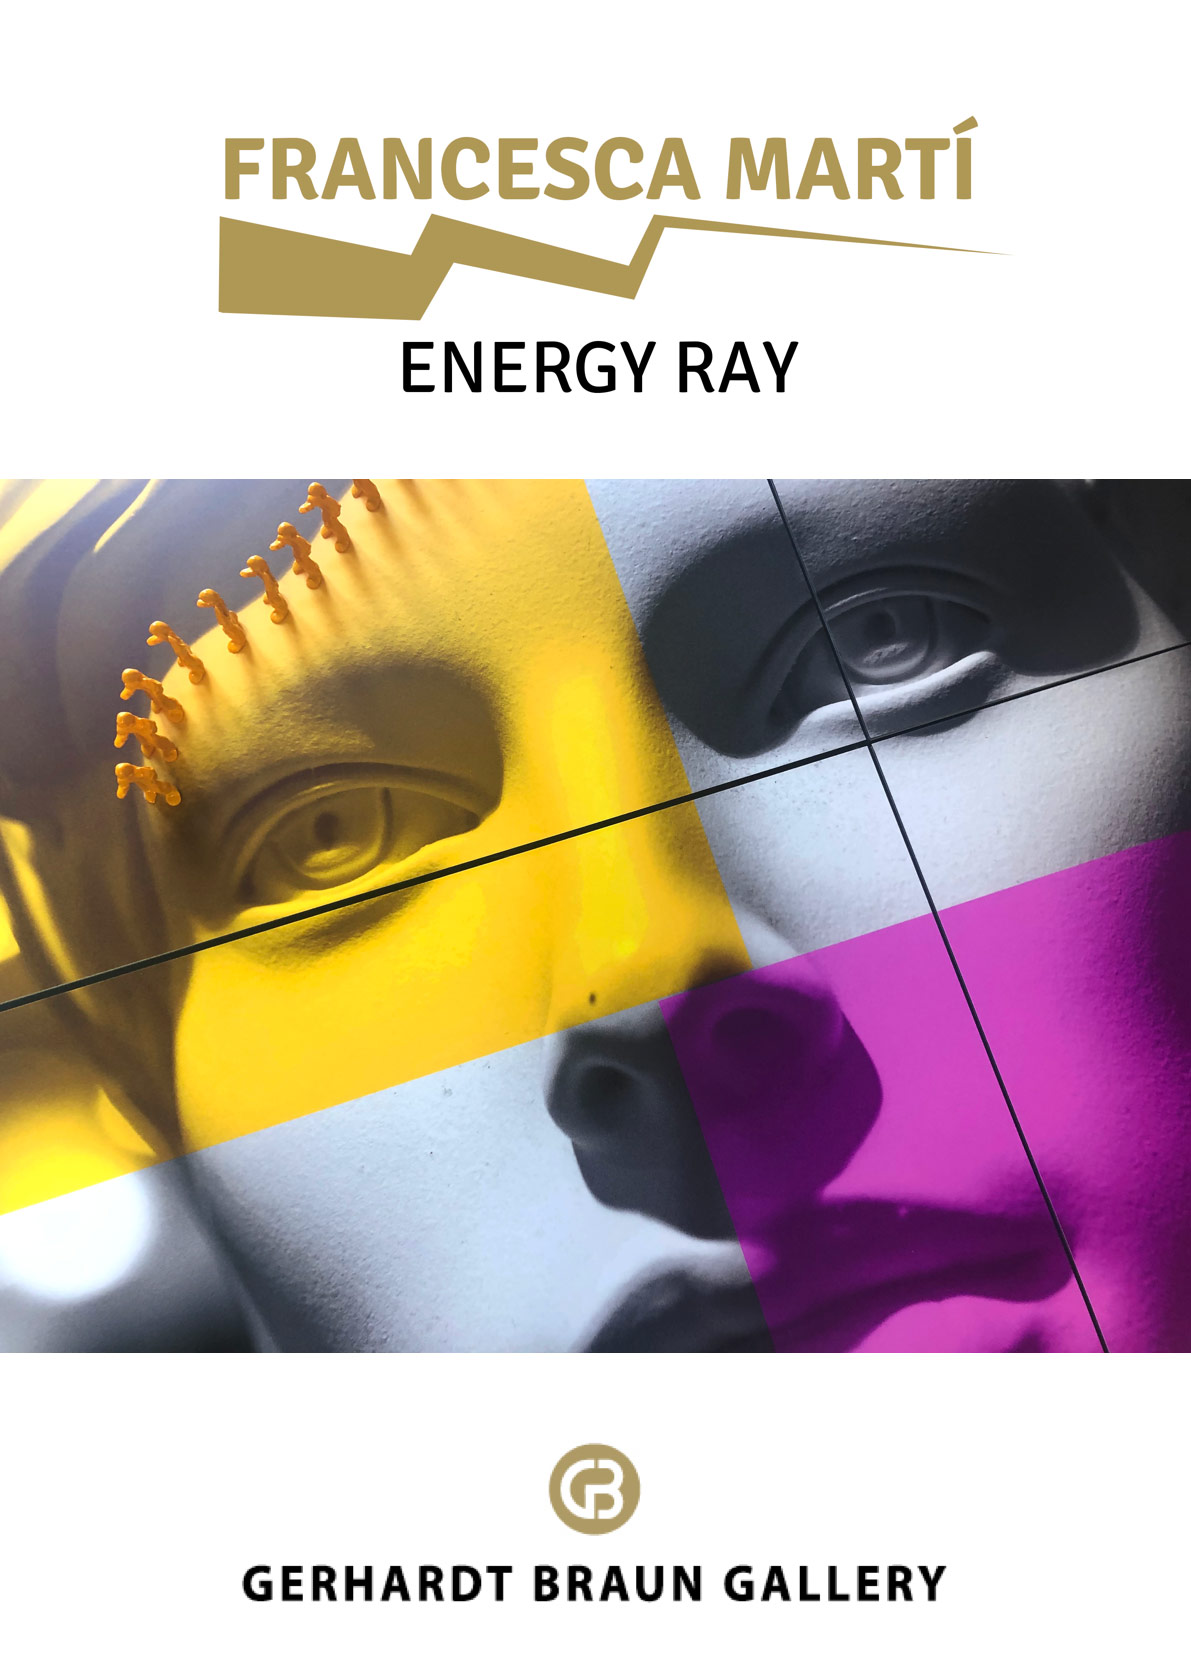 energy-ray-francesca-marti